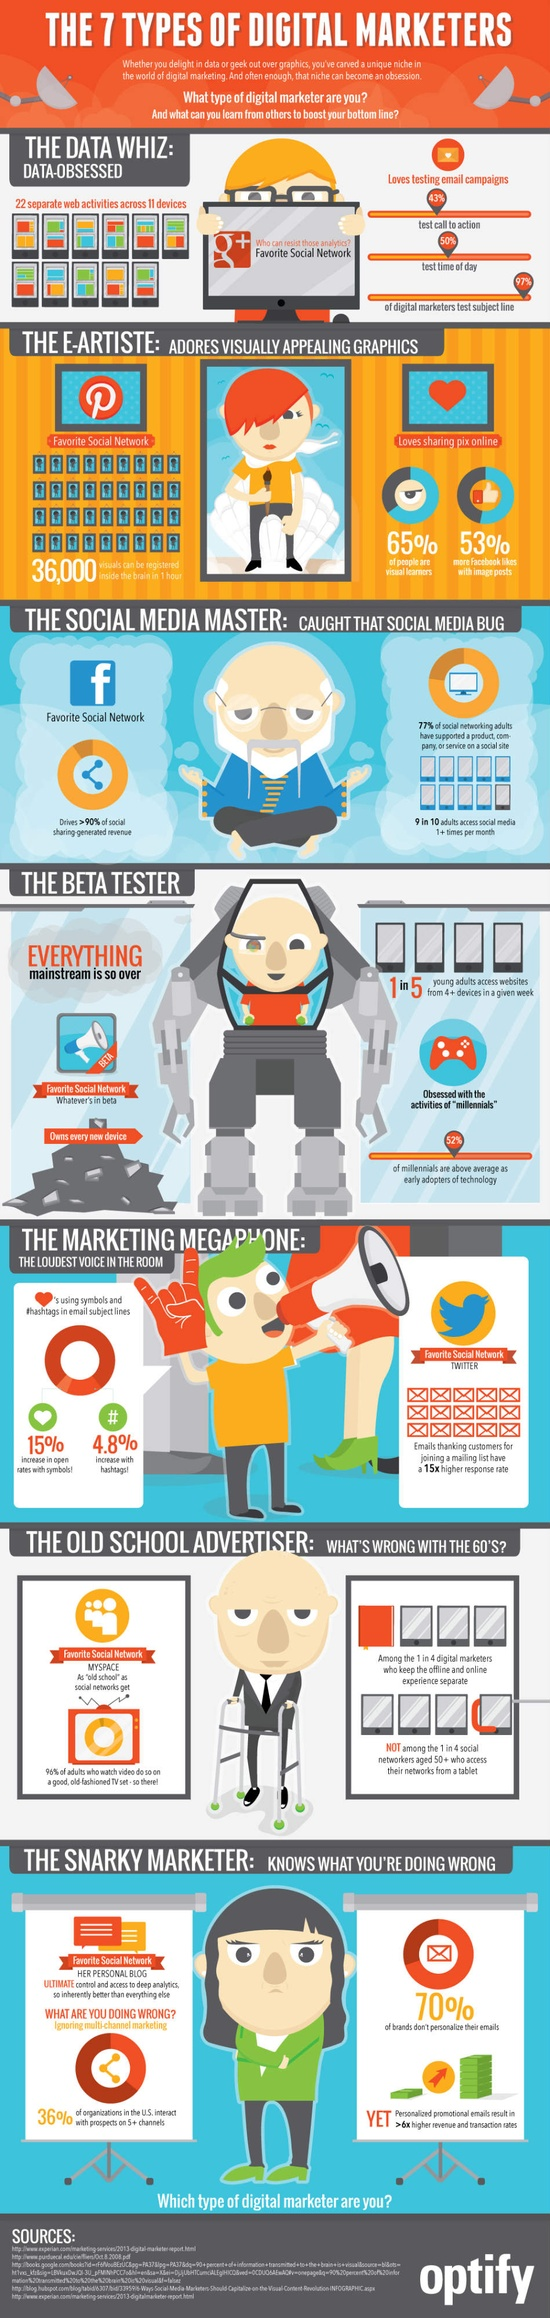 7 Popular digital marketer types in digital marketing